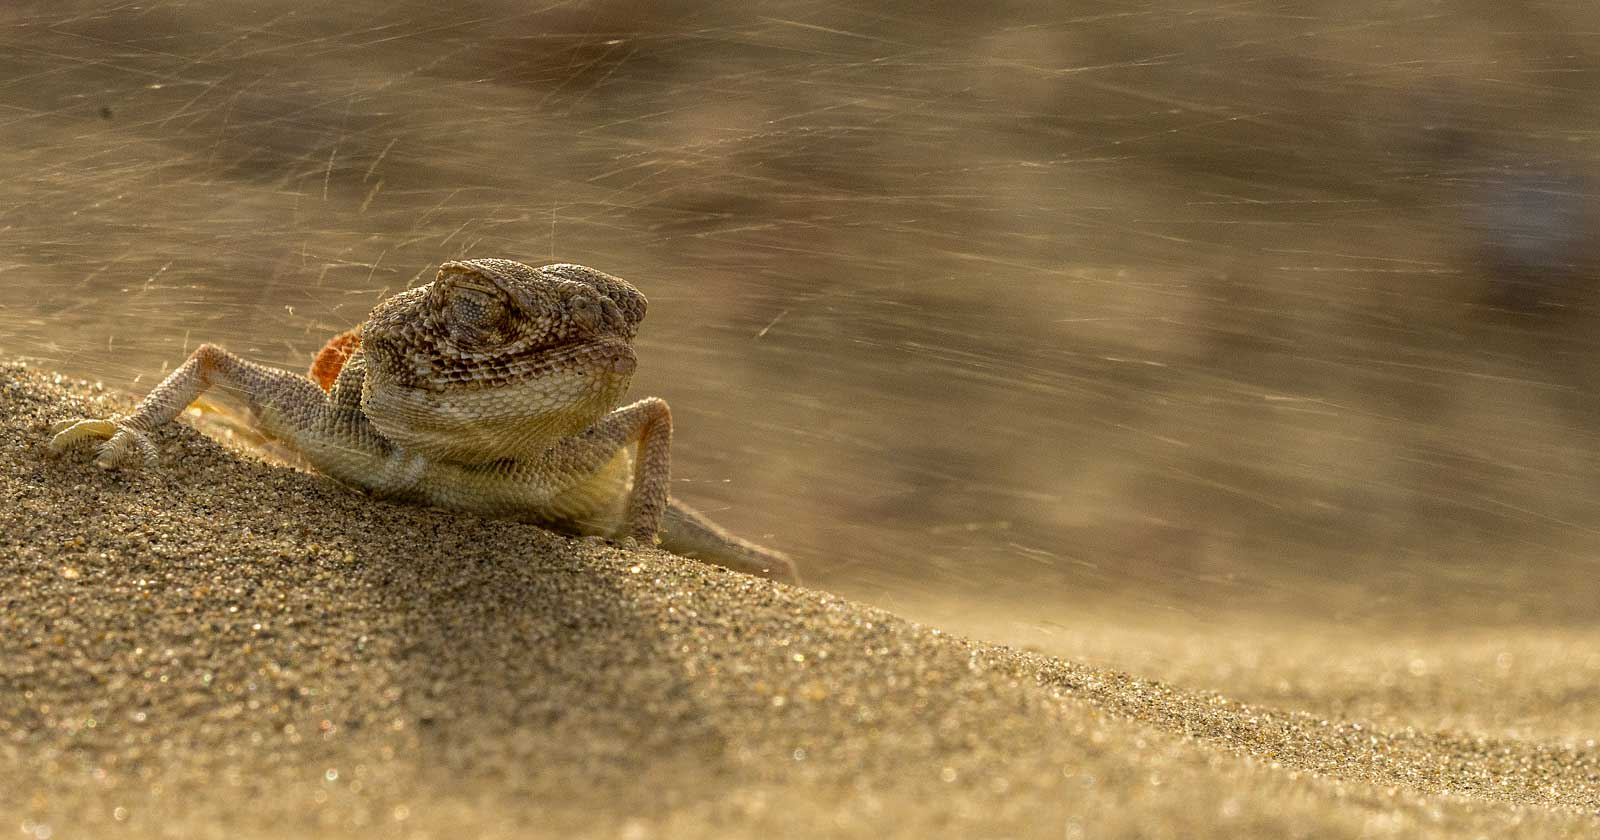 Among the smaller residents of the Thar is the toad-headed lizard (Bufoniceps laungwalaensis), an endemic species that camouflages perfectly against the sand. These lizards are one of several reptiles that inhabit the desert ecosystem. Other species include skinks, scorpions, sand snakes, and sand boas. Photo: Pallavi Laveti